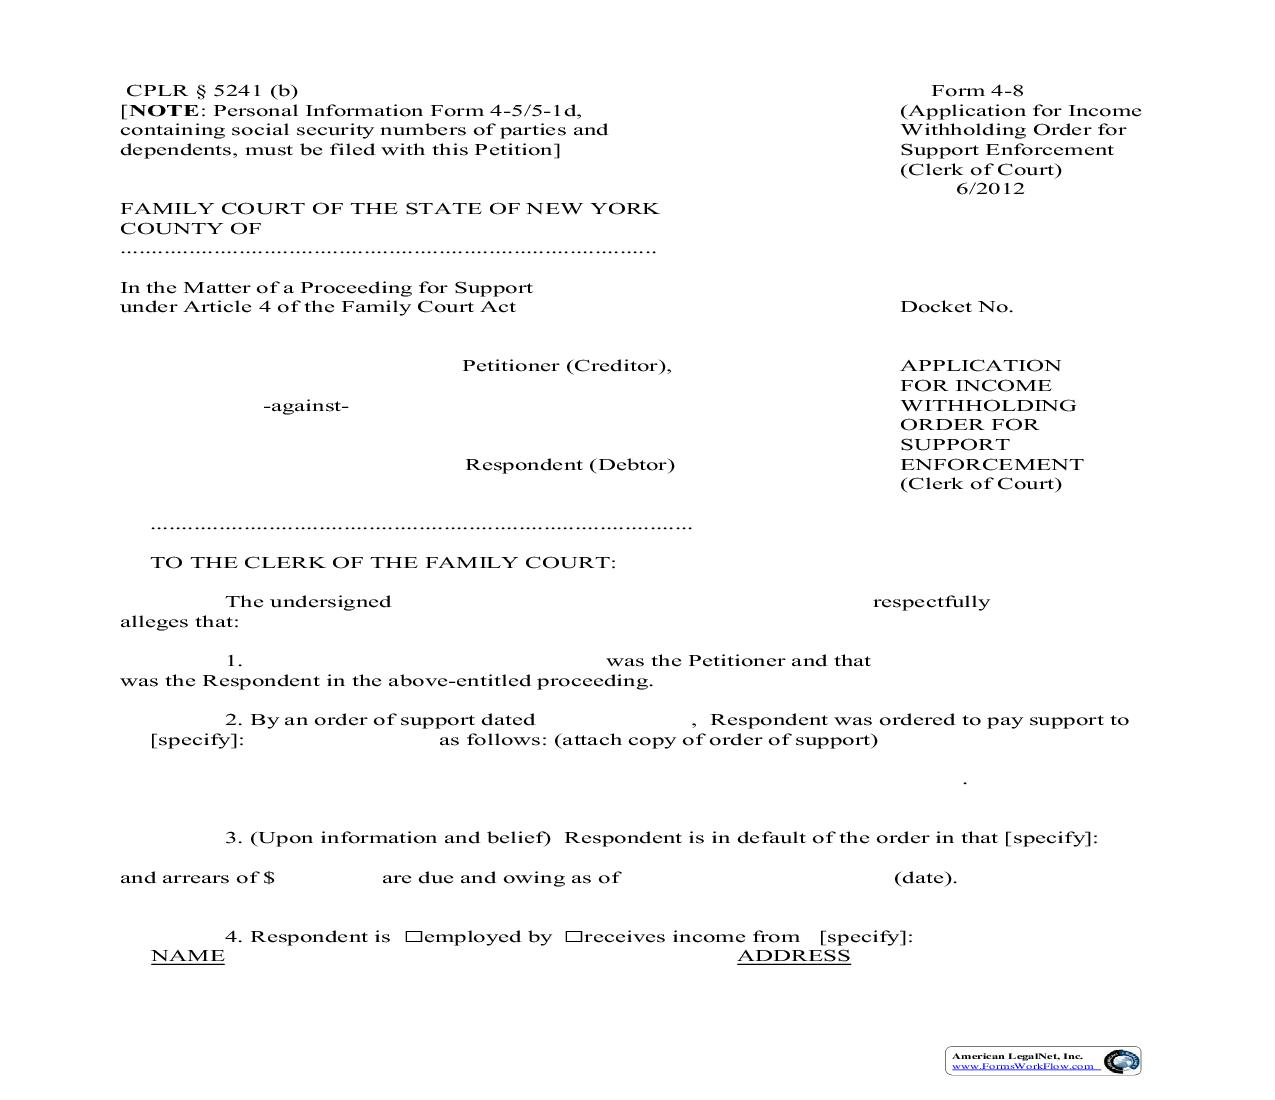 Application For Income Execution For Support Enforcement (Clerk Of Court) {4-8} | Pdf Fpdf Doc Docx | New York